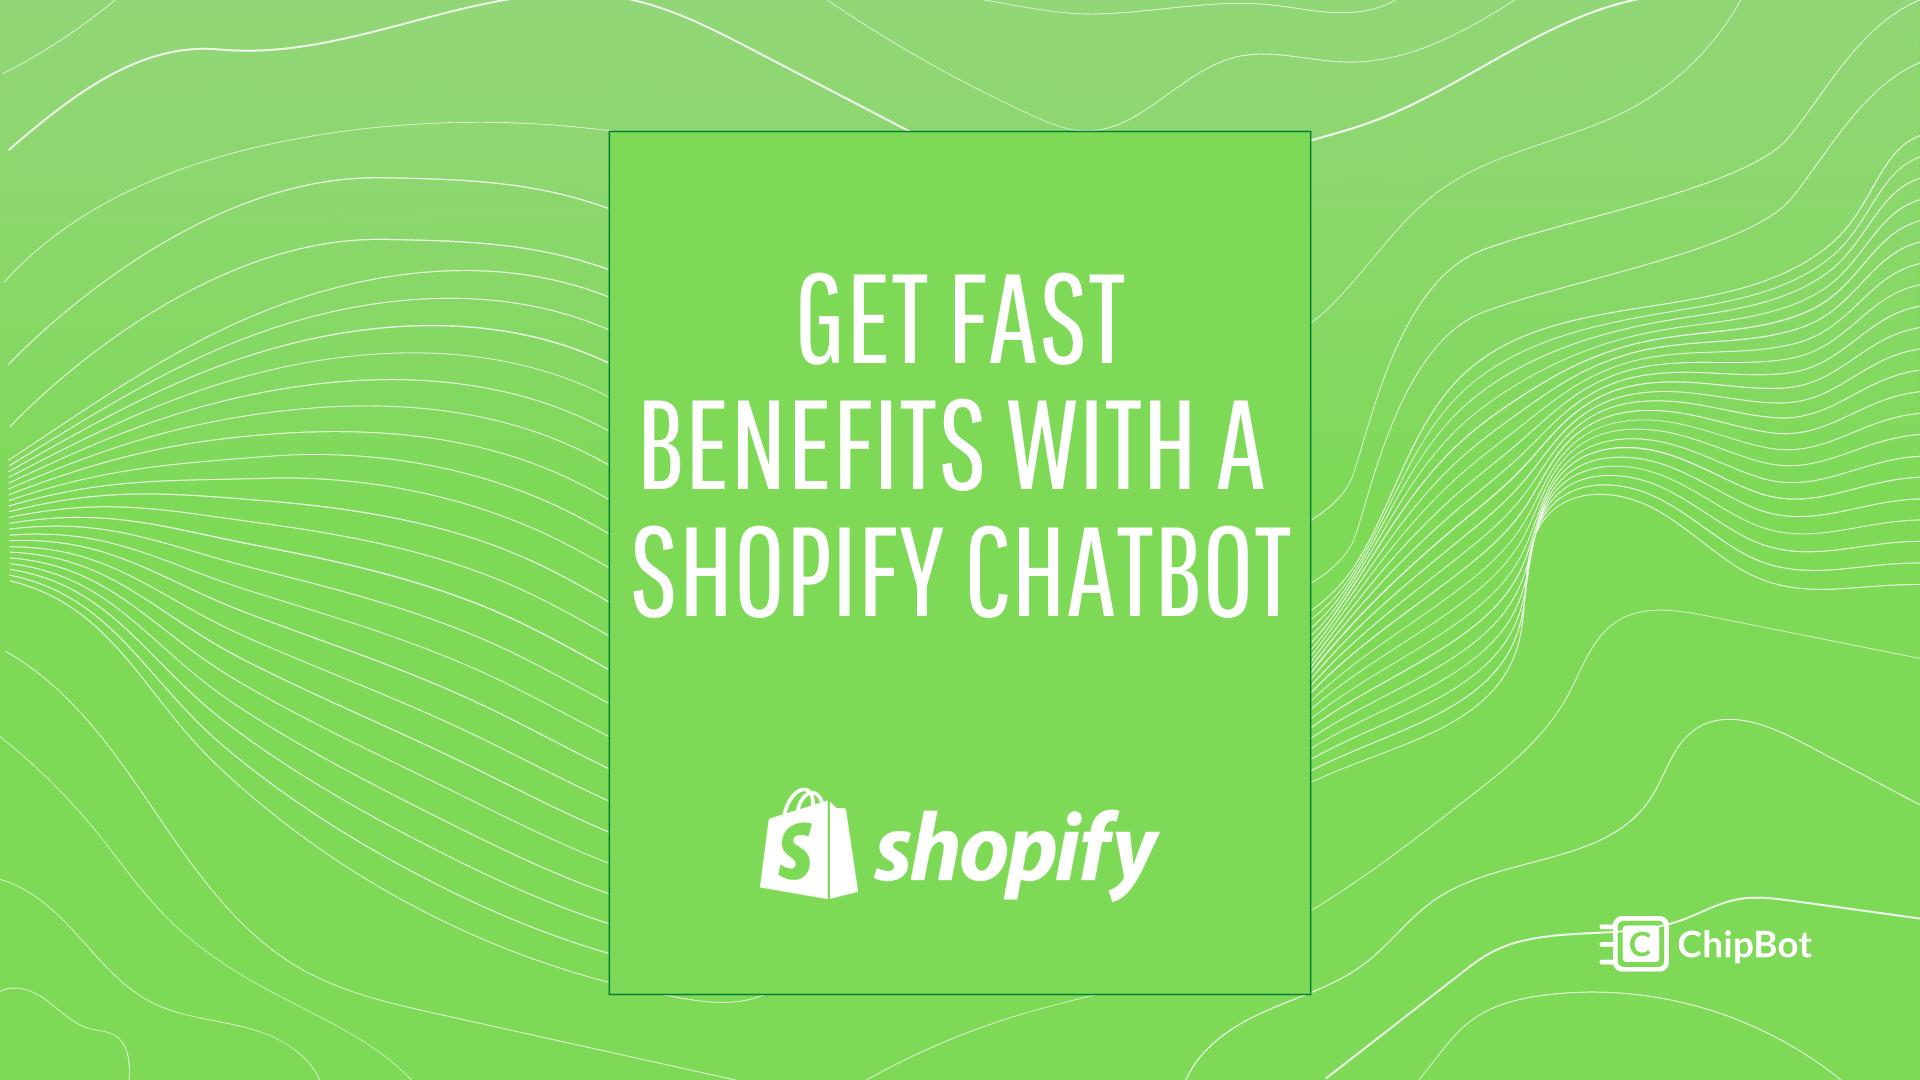 Get Fast Benefits with a Shopify Chatbot